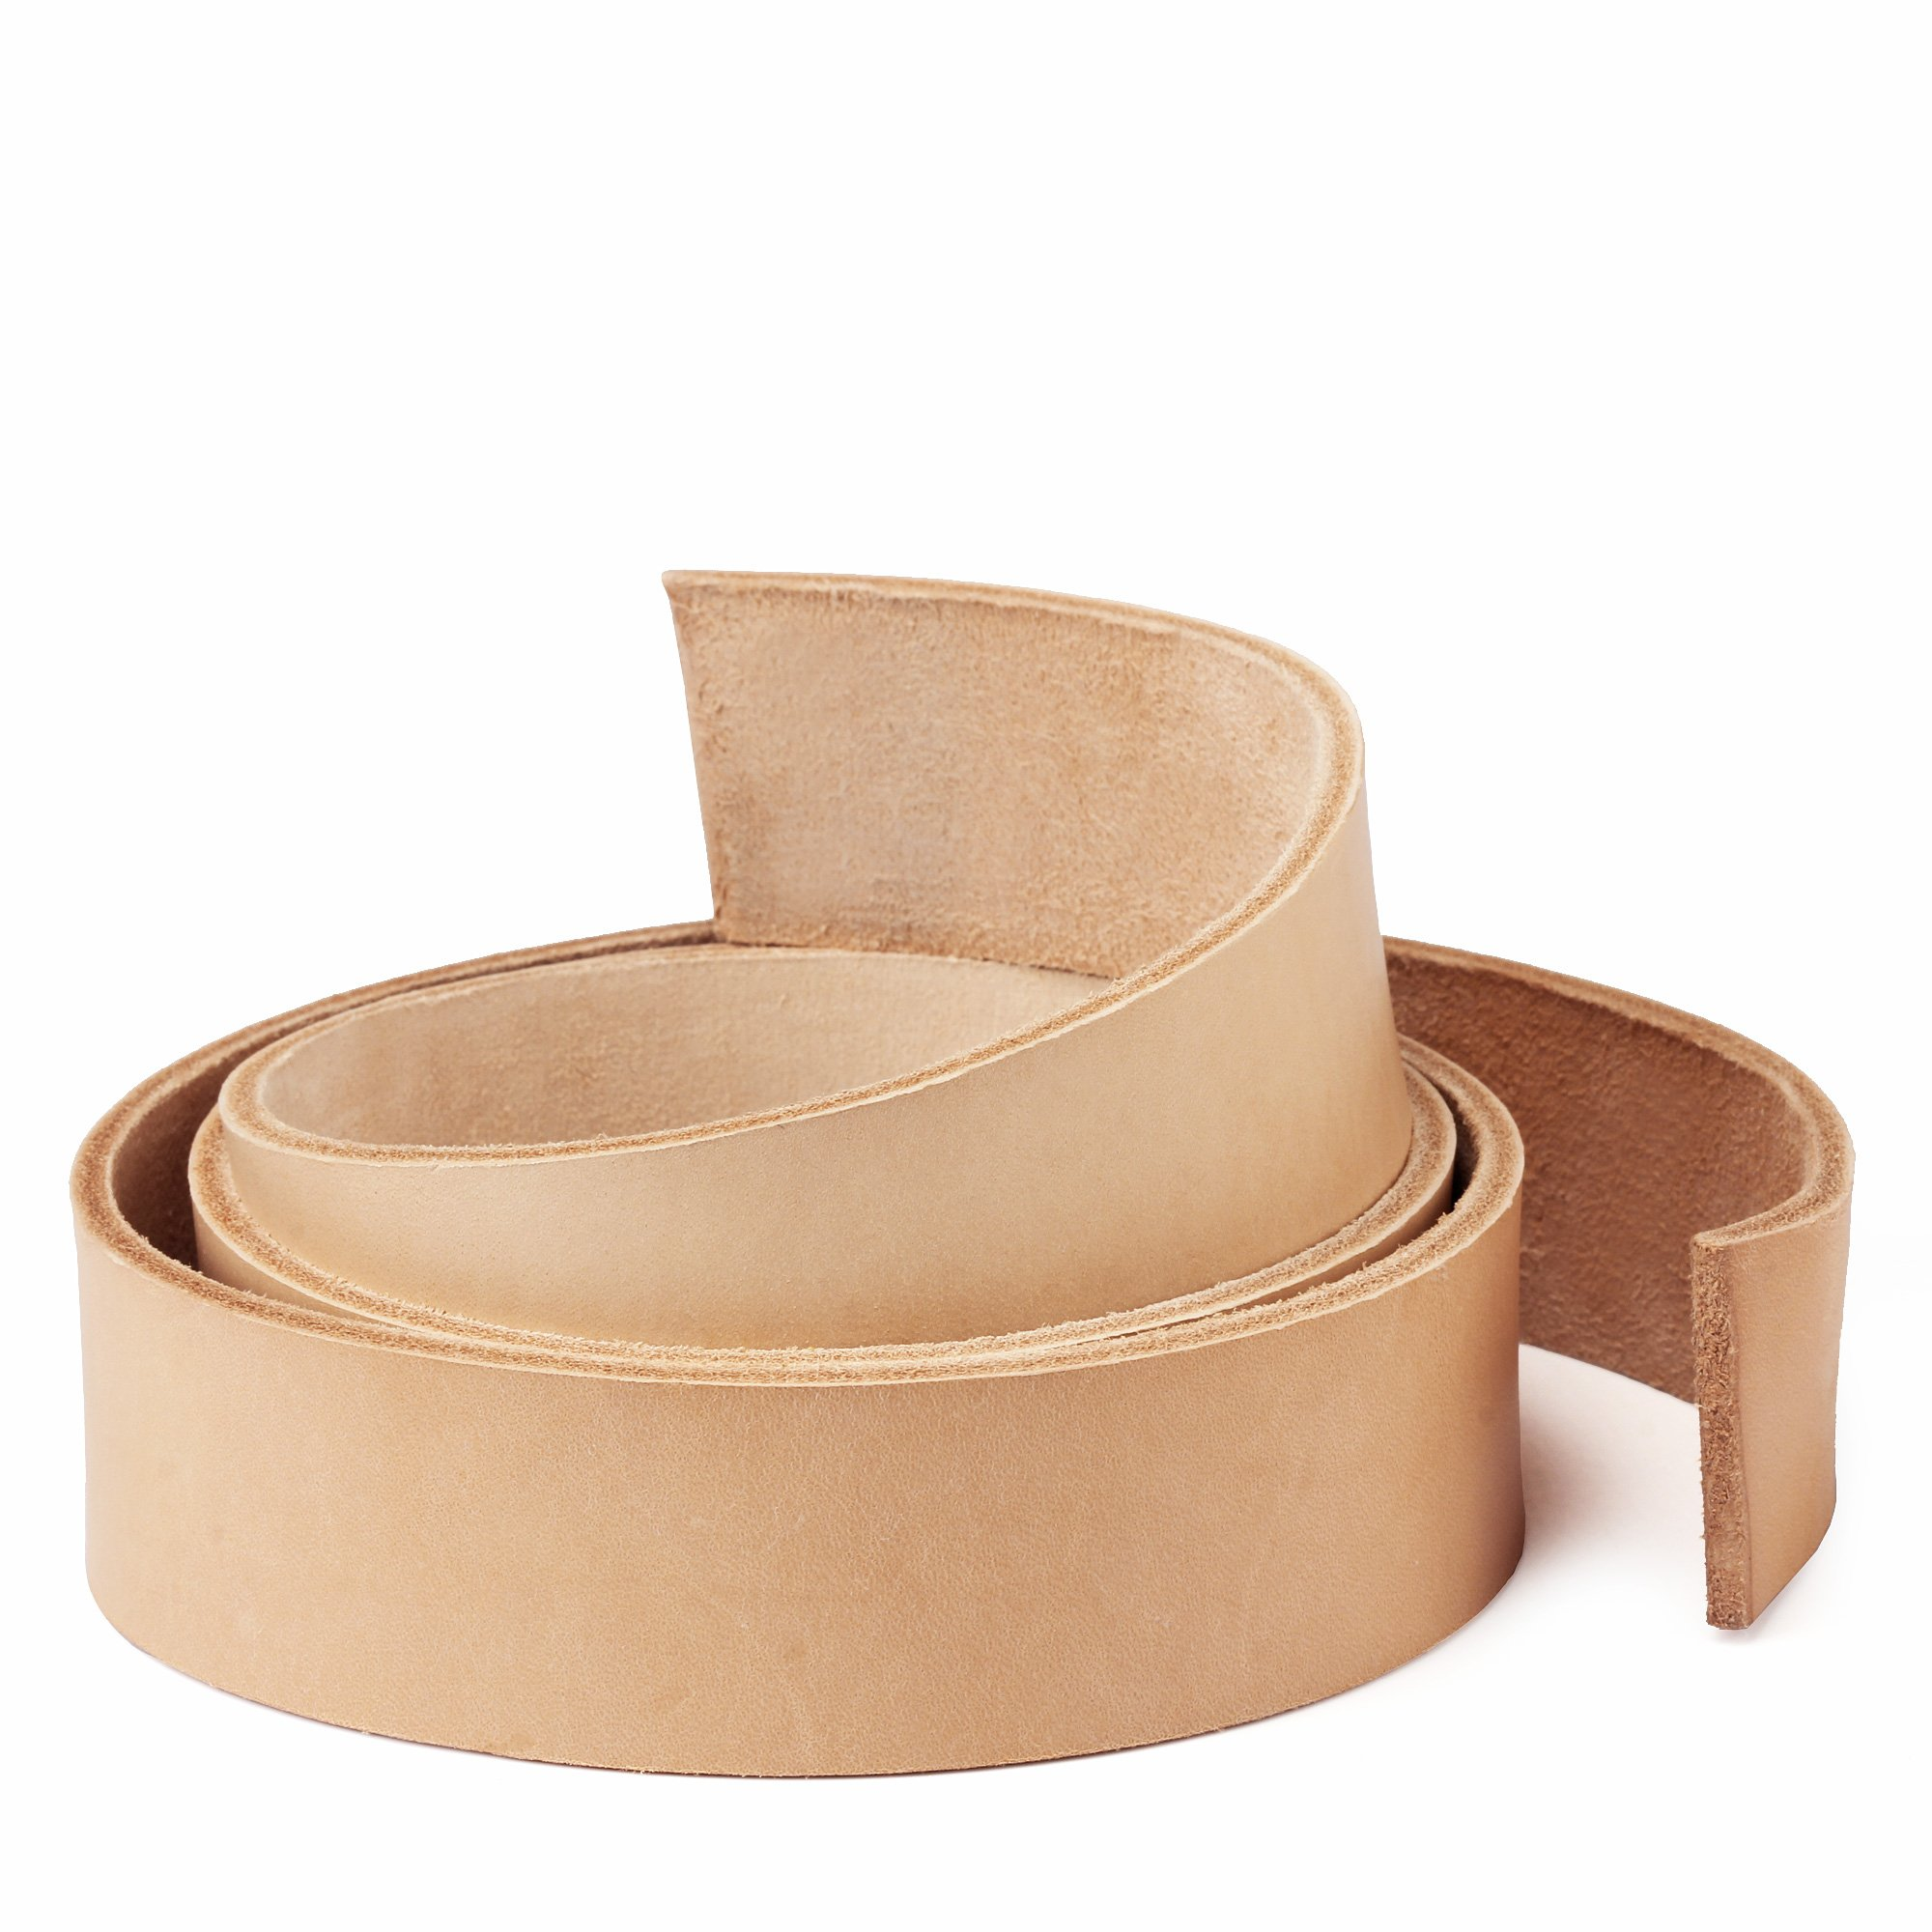 """WUTA Leather Natural Cowhide Leather Strap Vegetable Tan Leather Belt Blank Import 9/10 oz (45""""-50"""") 38mm (1.5"""") width"""